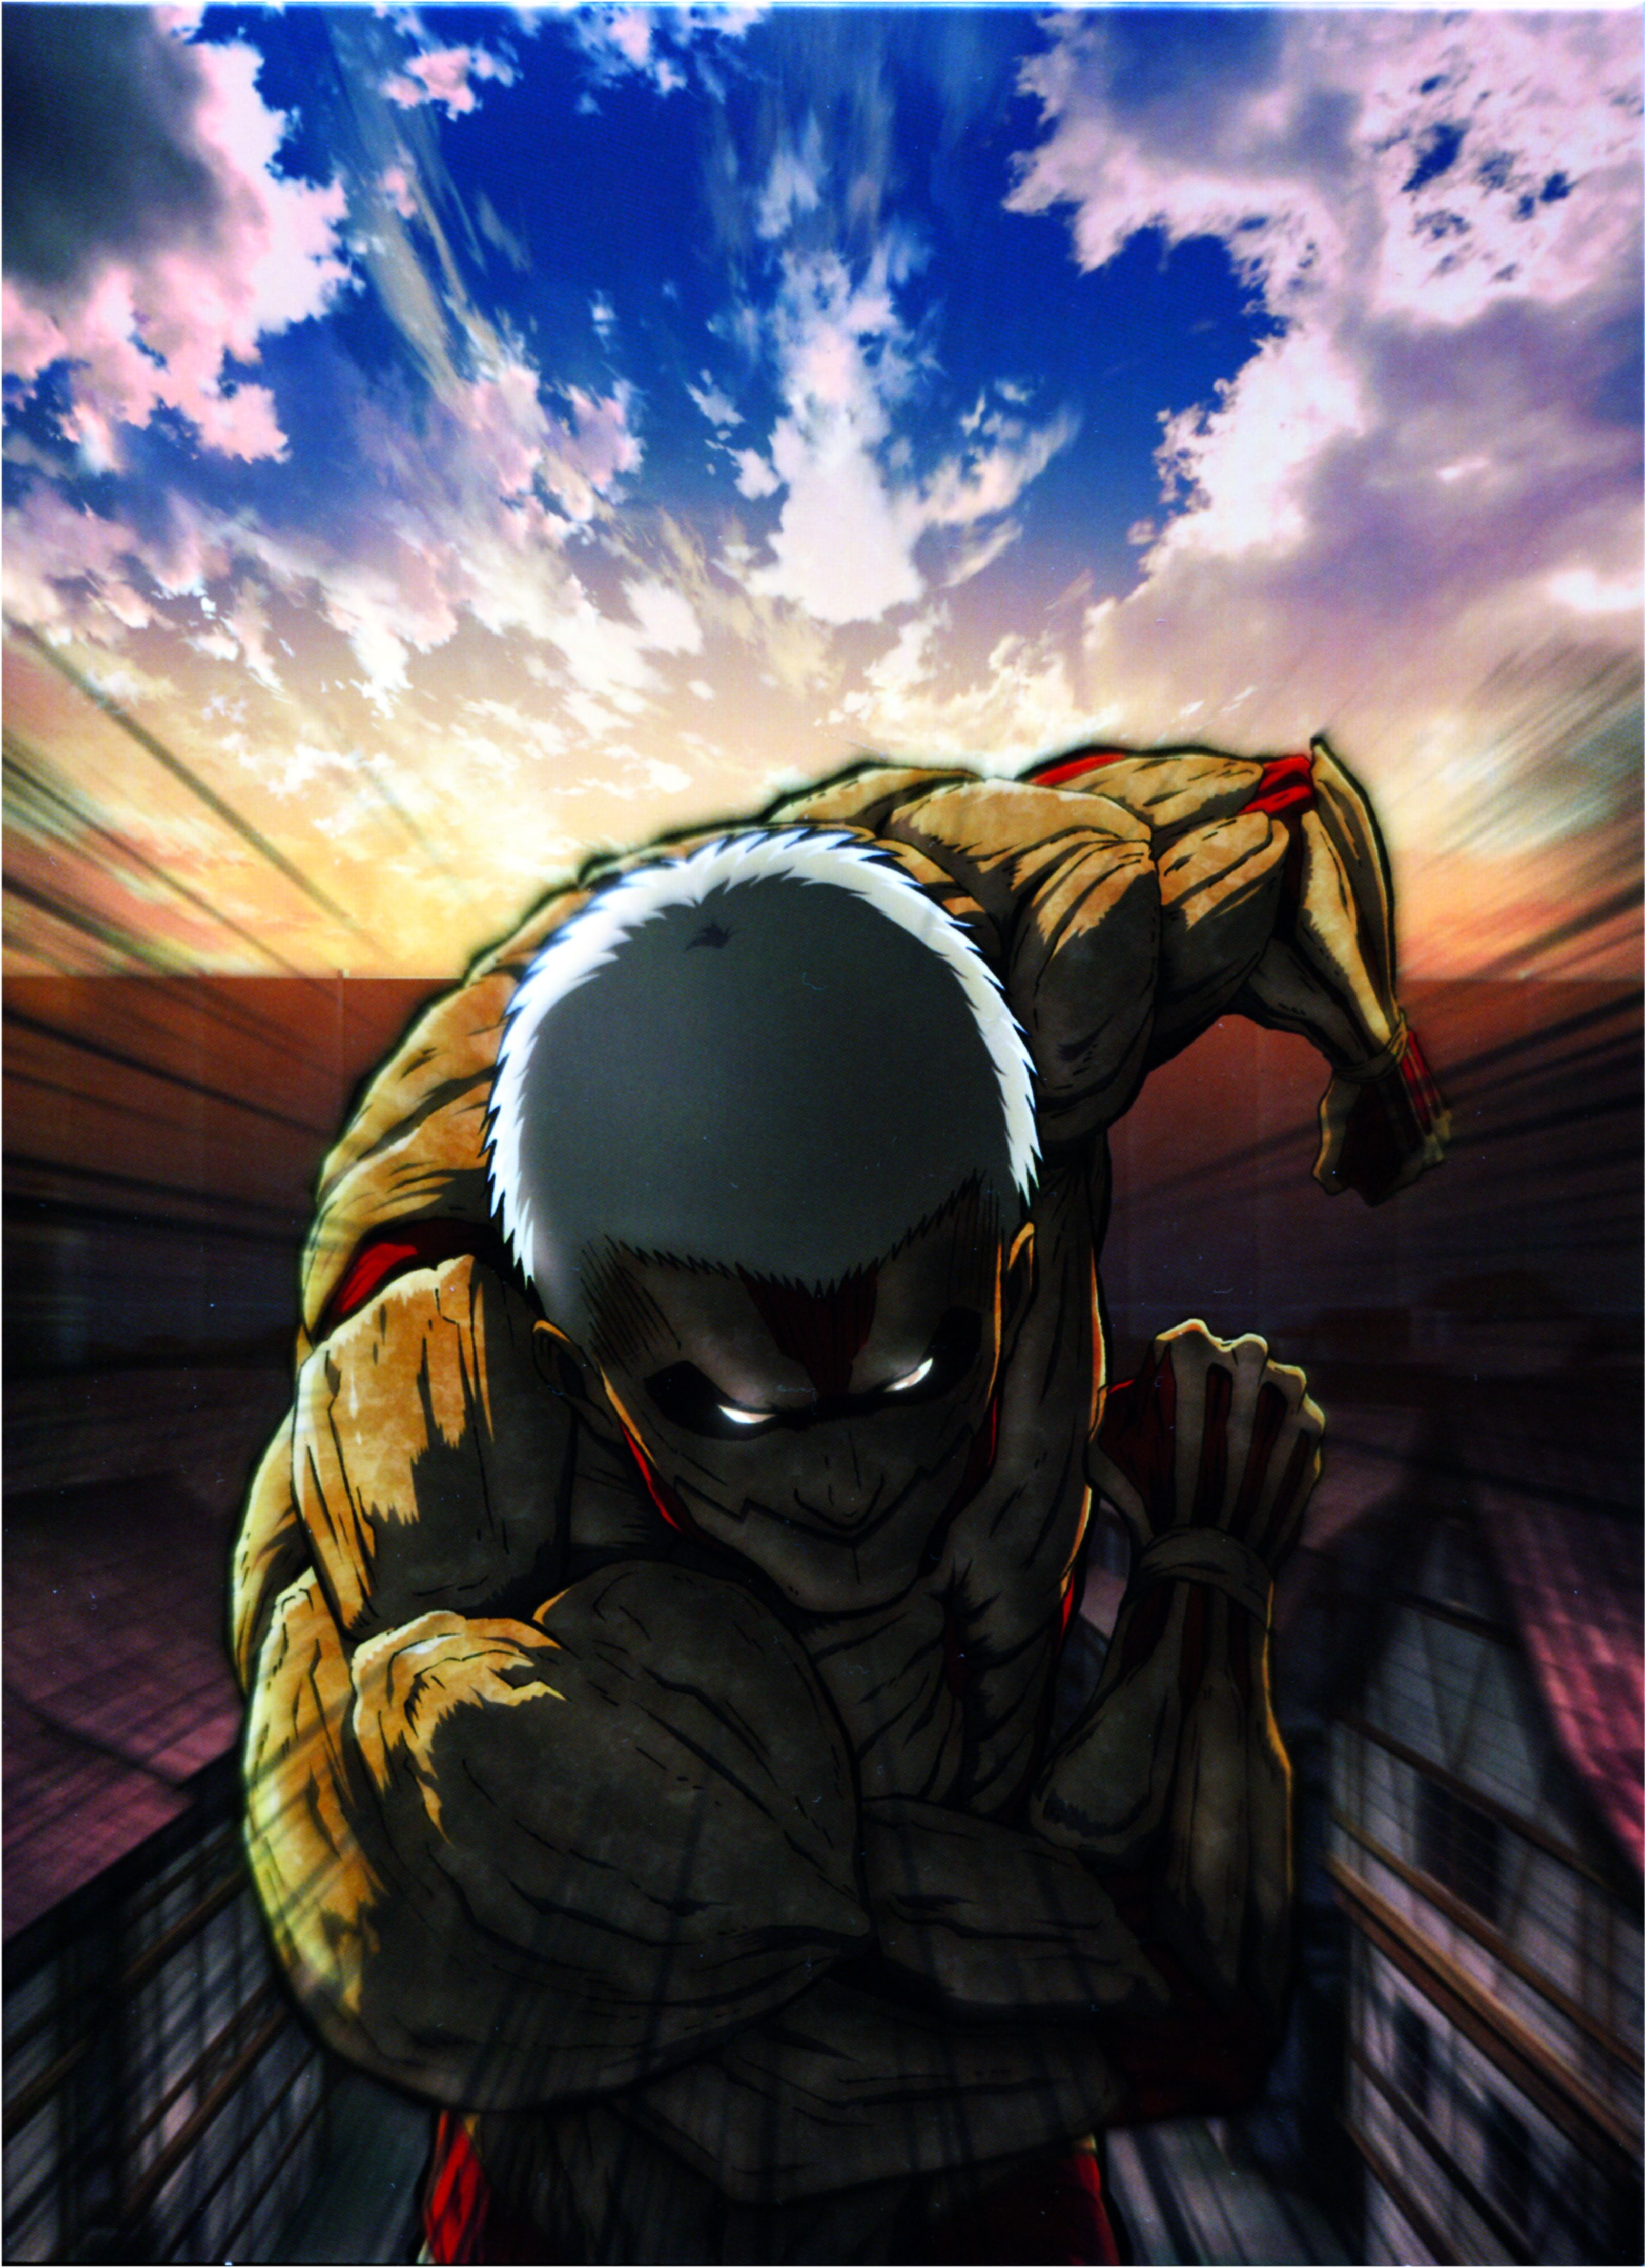 Attack On Titan Armored Titan Wallpapers Top Free Attack On Titan Armored Titan Backgrounds Wallpaperaccess